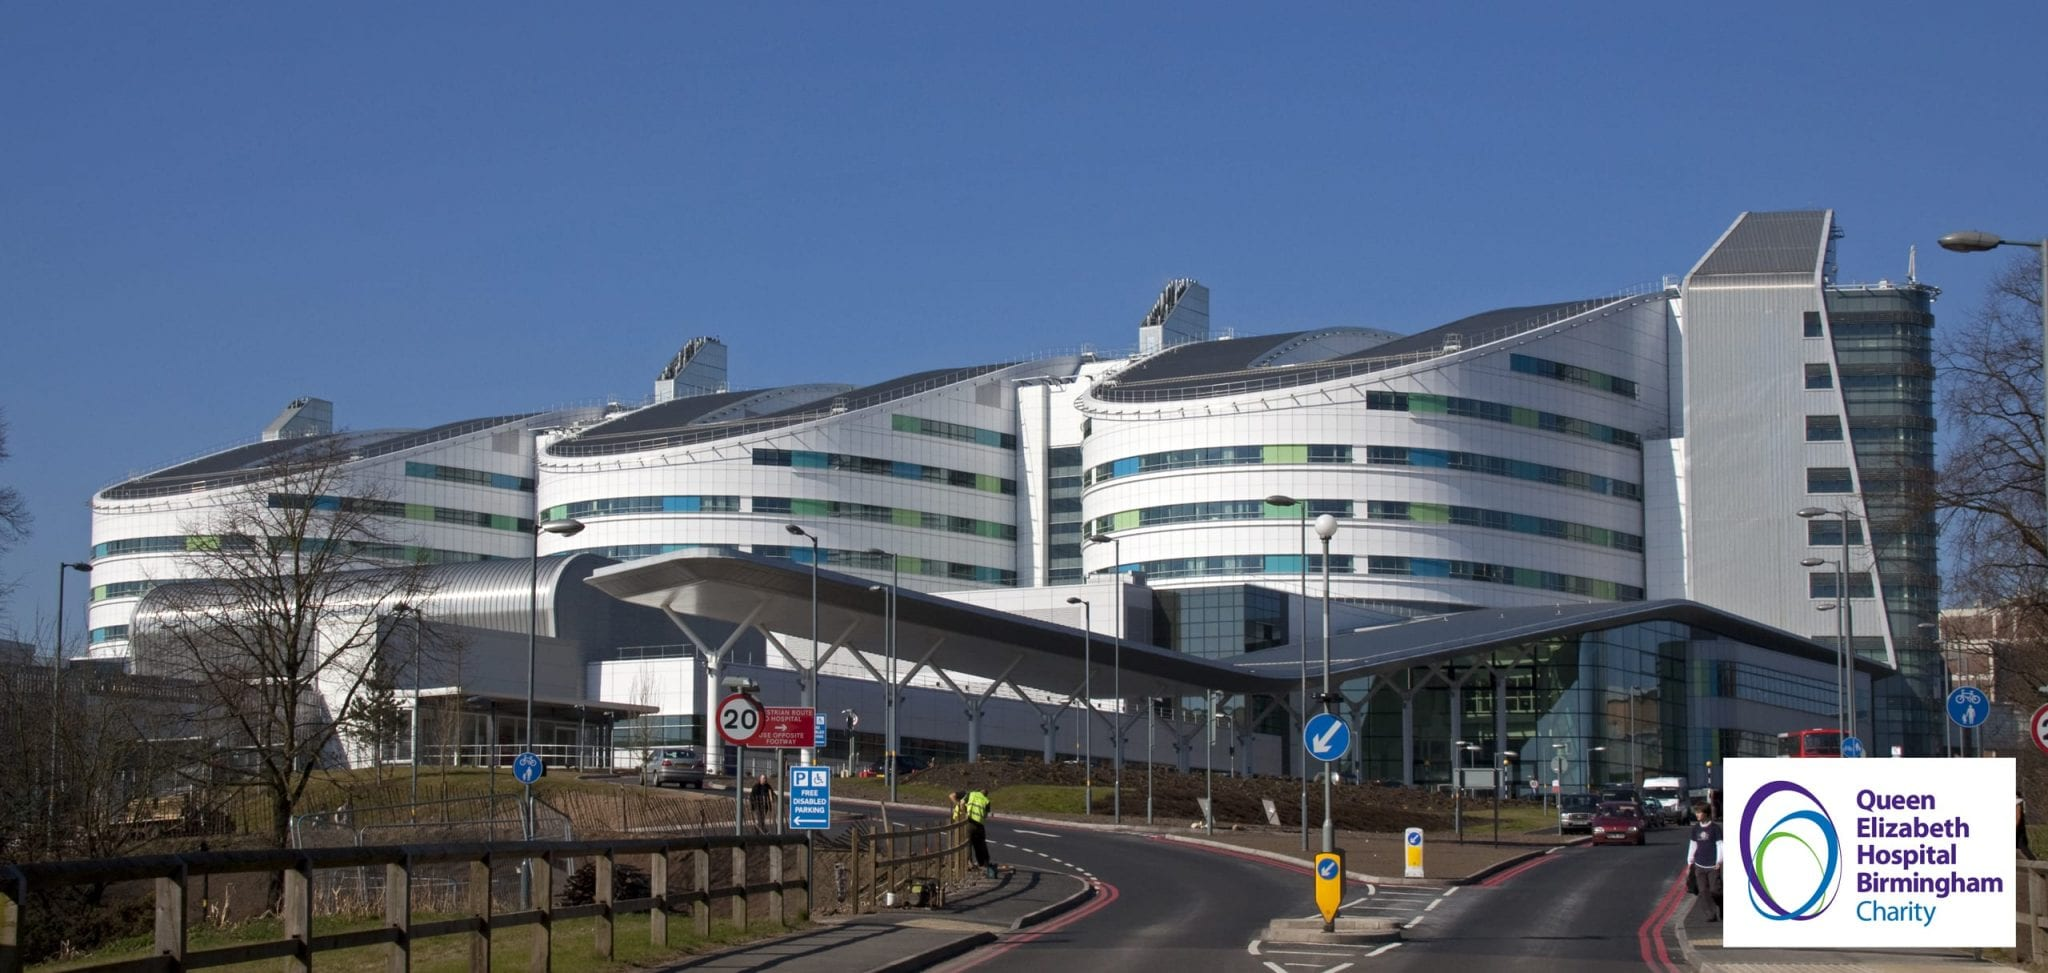 Queen Elizabeth Hospital Birmingham Building